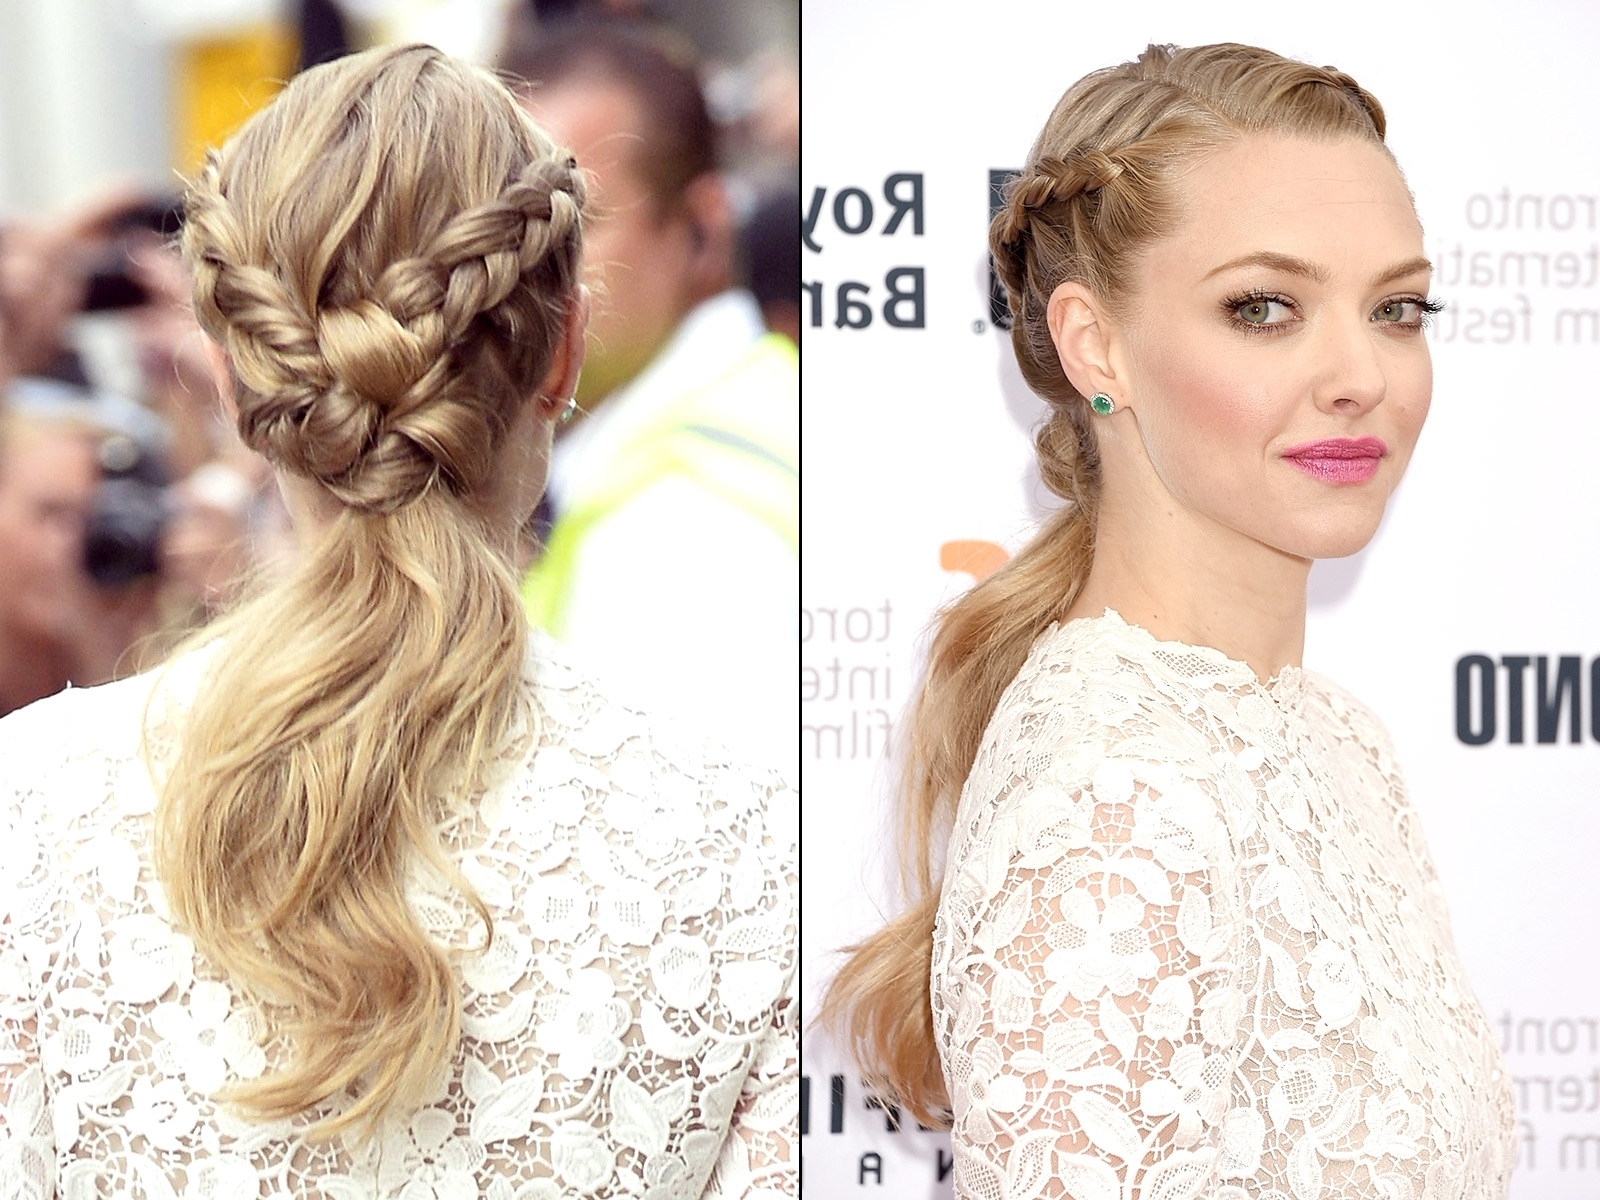 Celebs' Braided Hairstyles On The Red Carpet Within Most Recently Released Celebrity Braided Hairstyles (View 6 of 15)